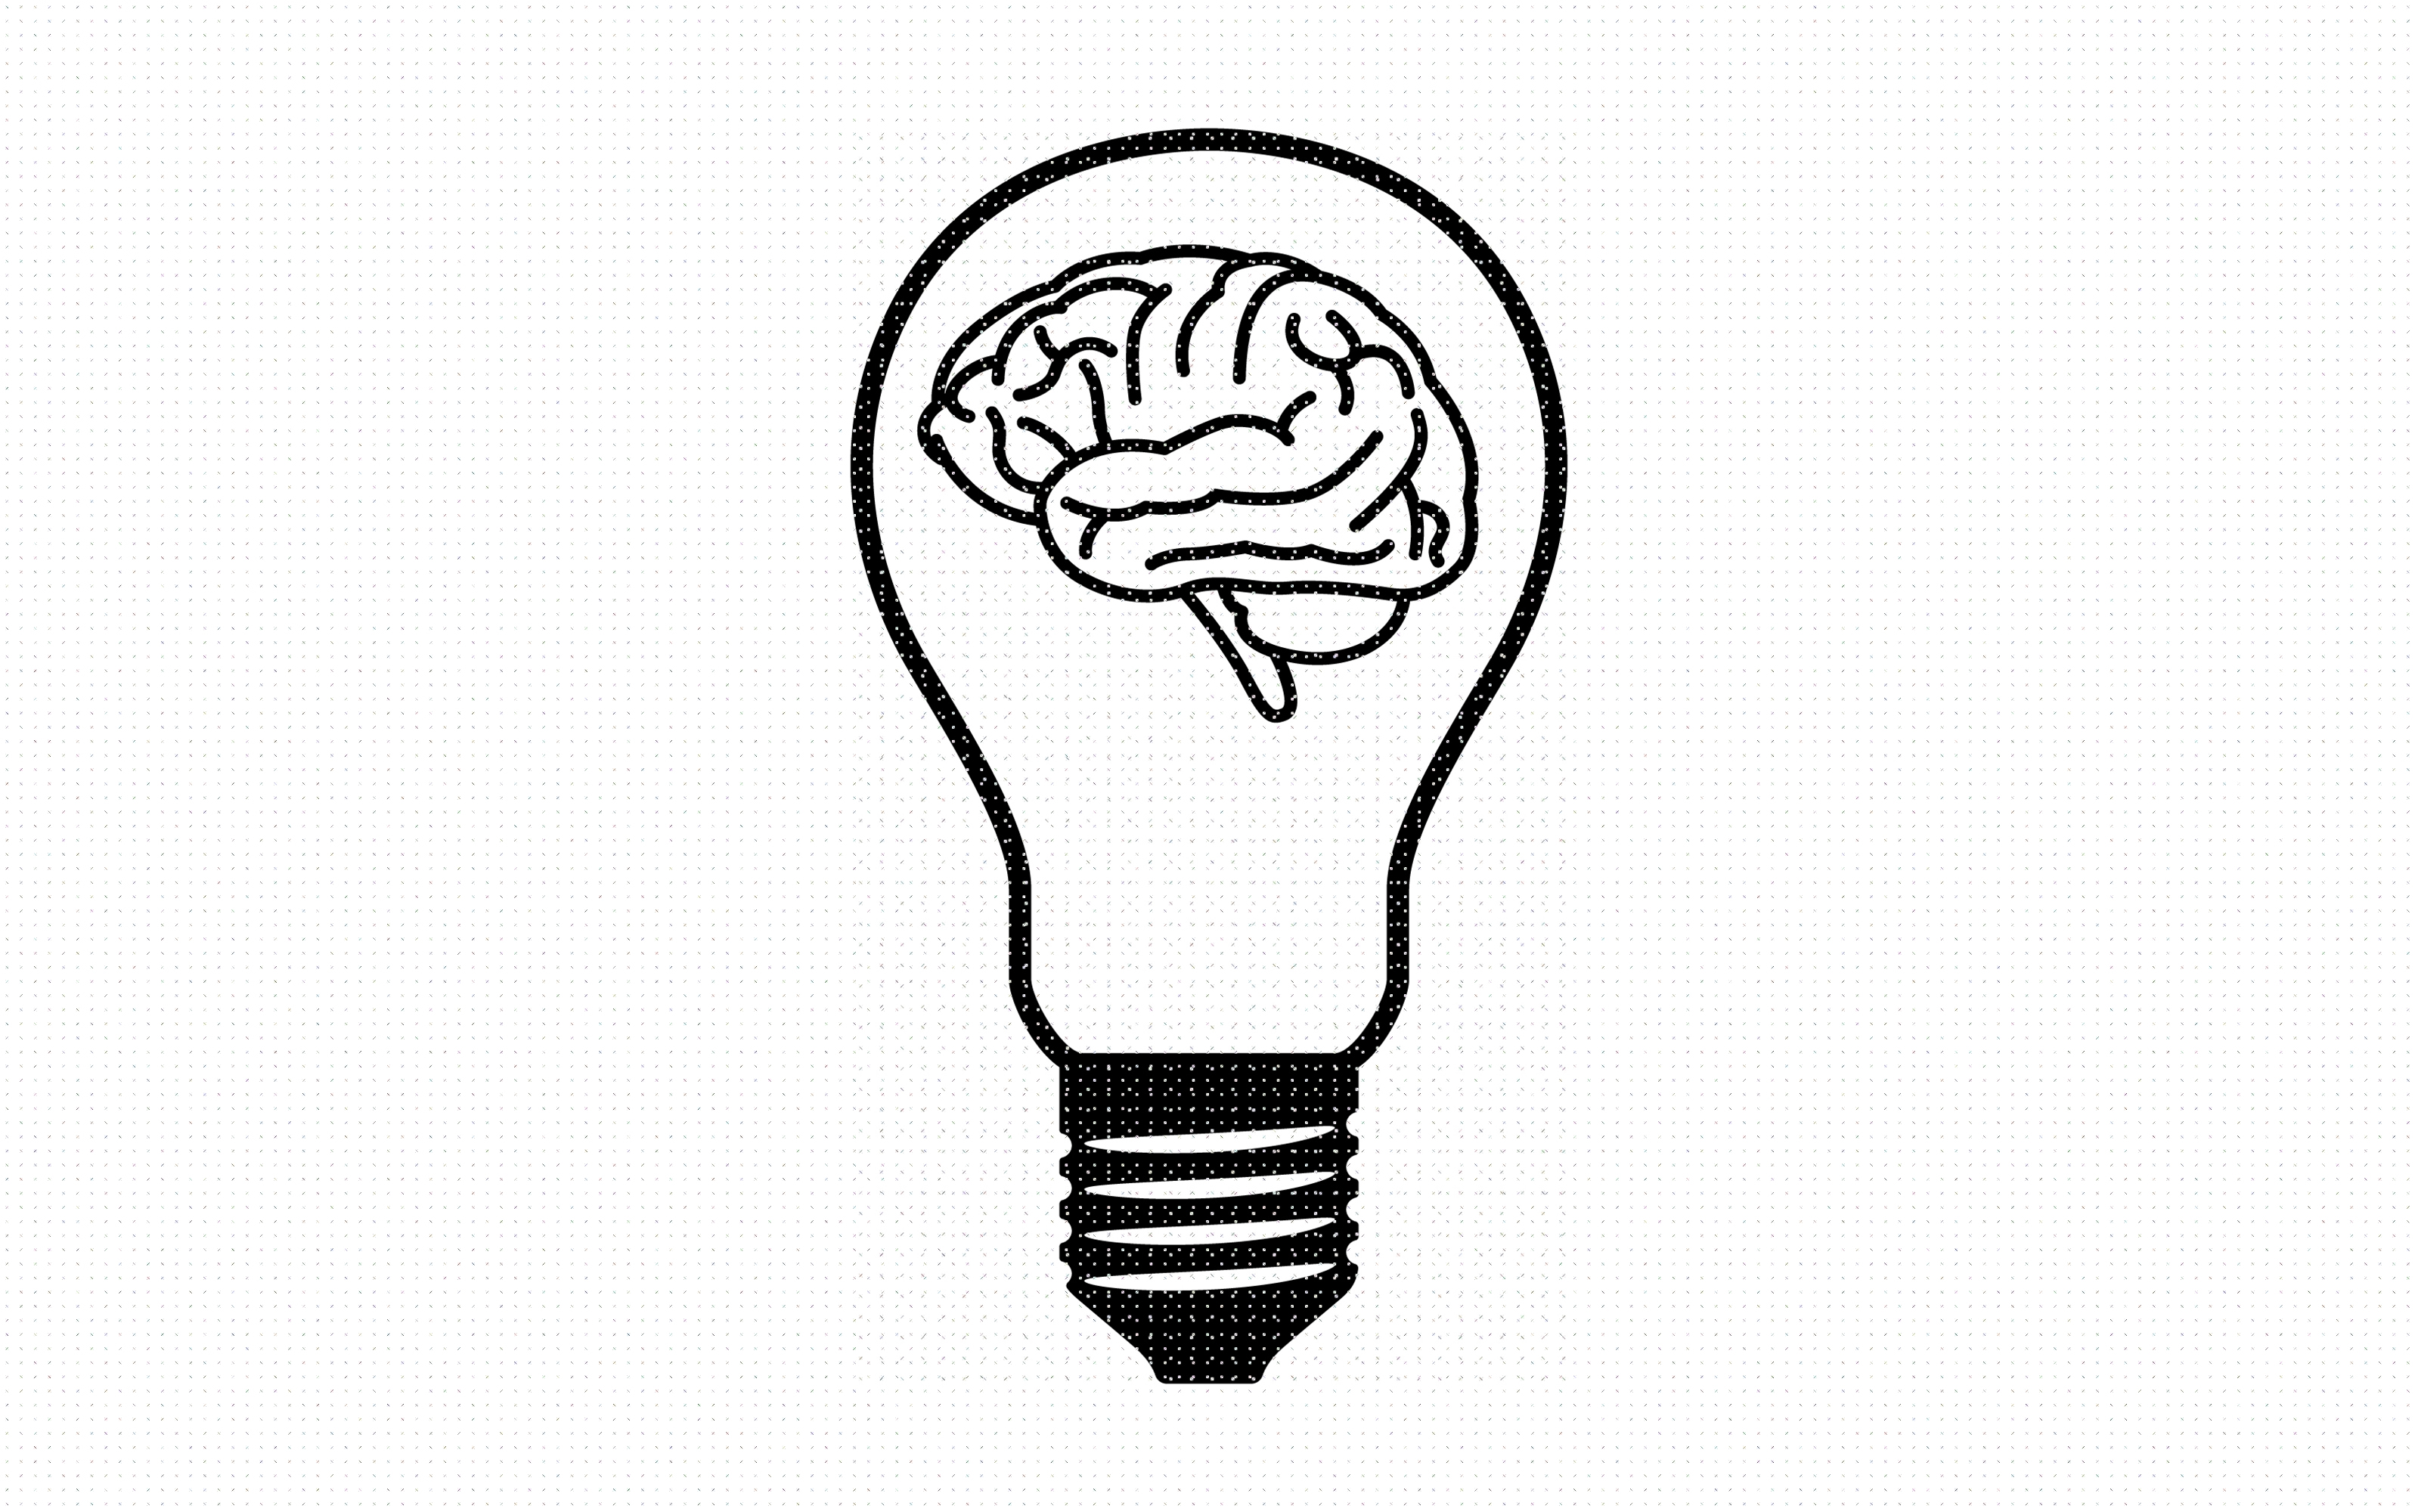 Download Free Brain Inside A Light Bulb Graphic By Crafteroks Creative Fabrica for Cricut Explore, Silhouette and other cutting machines.